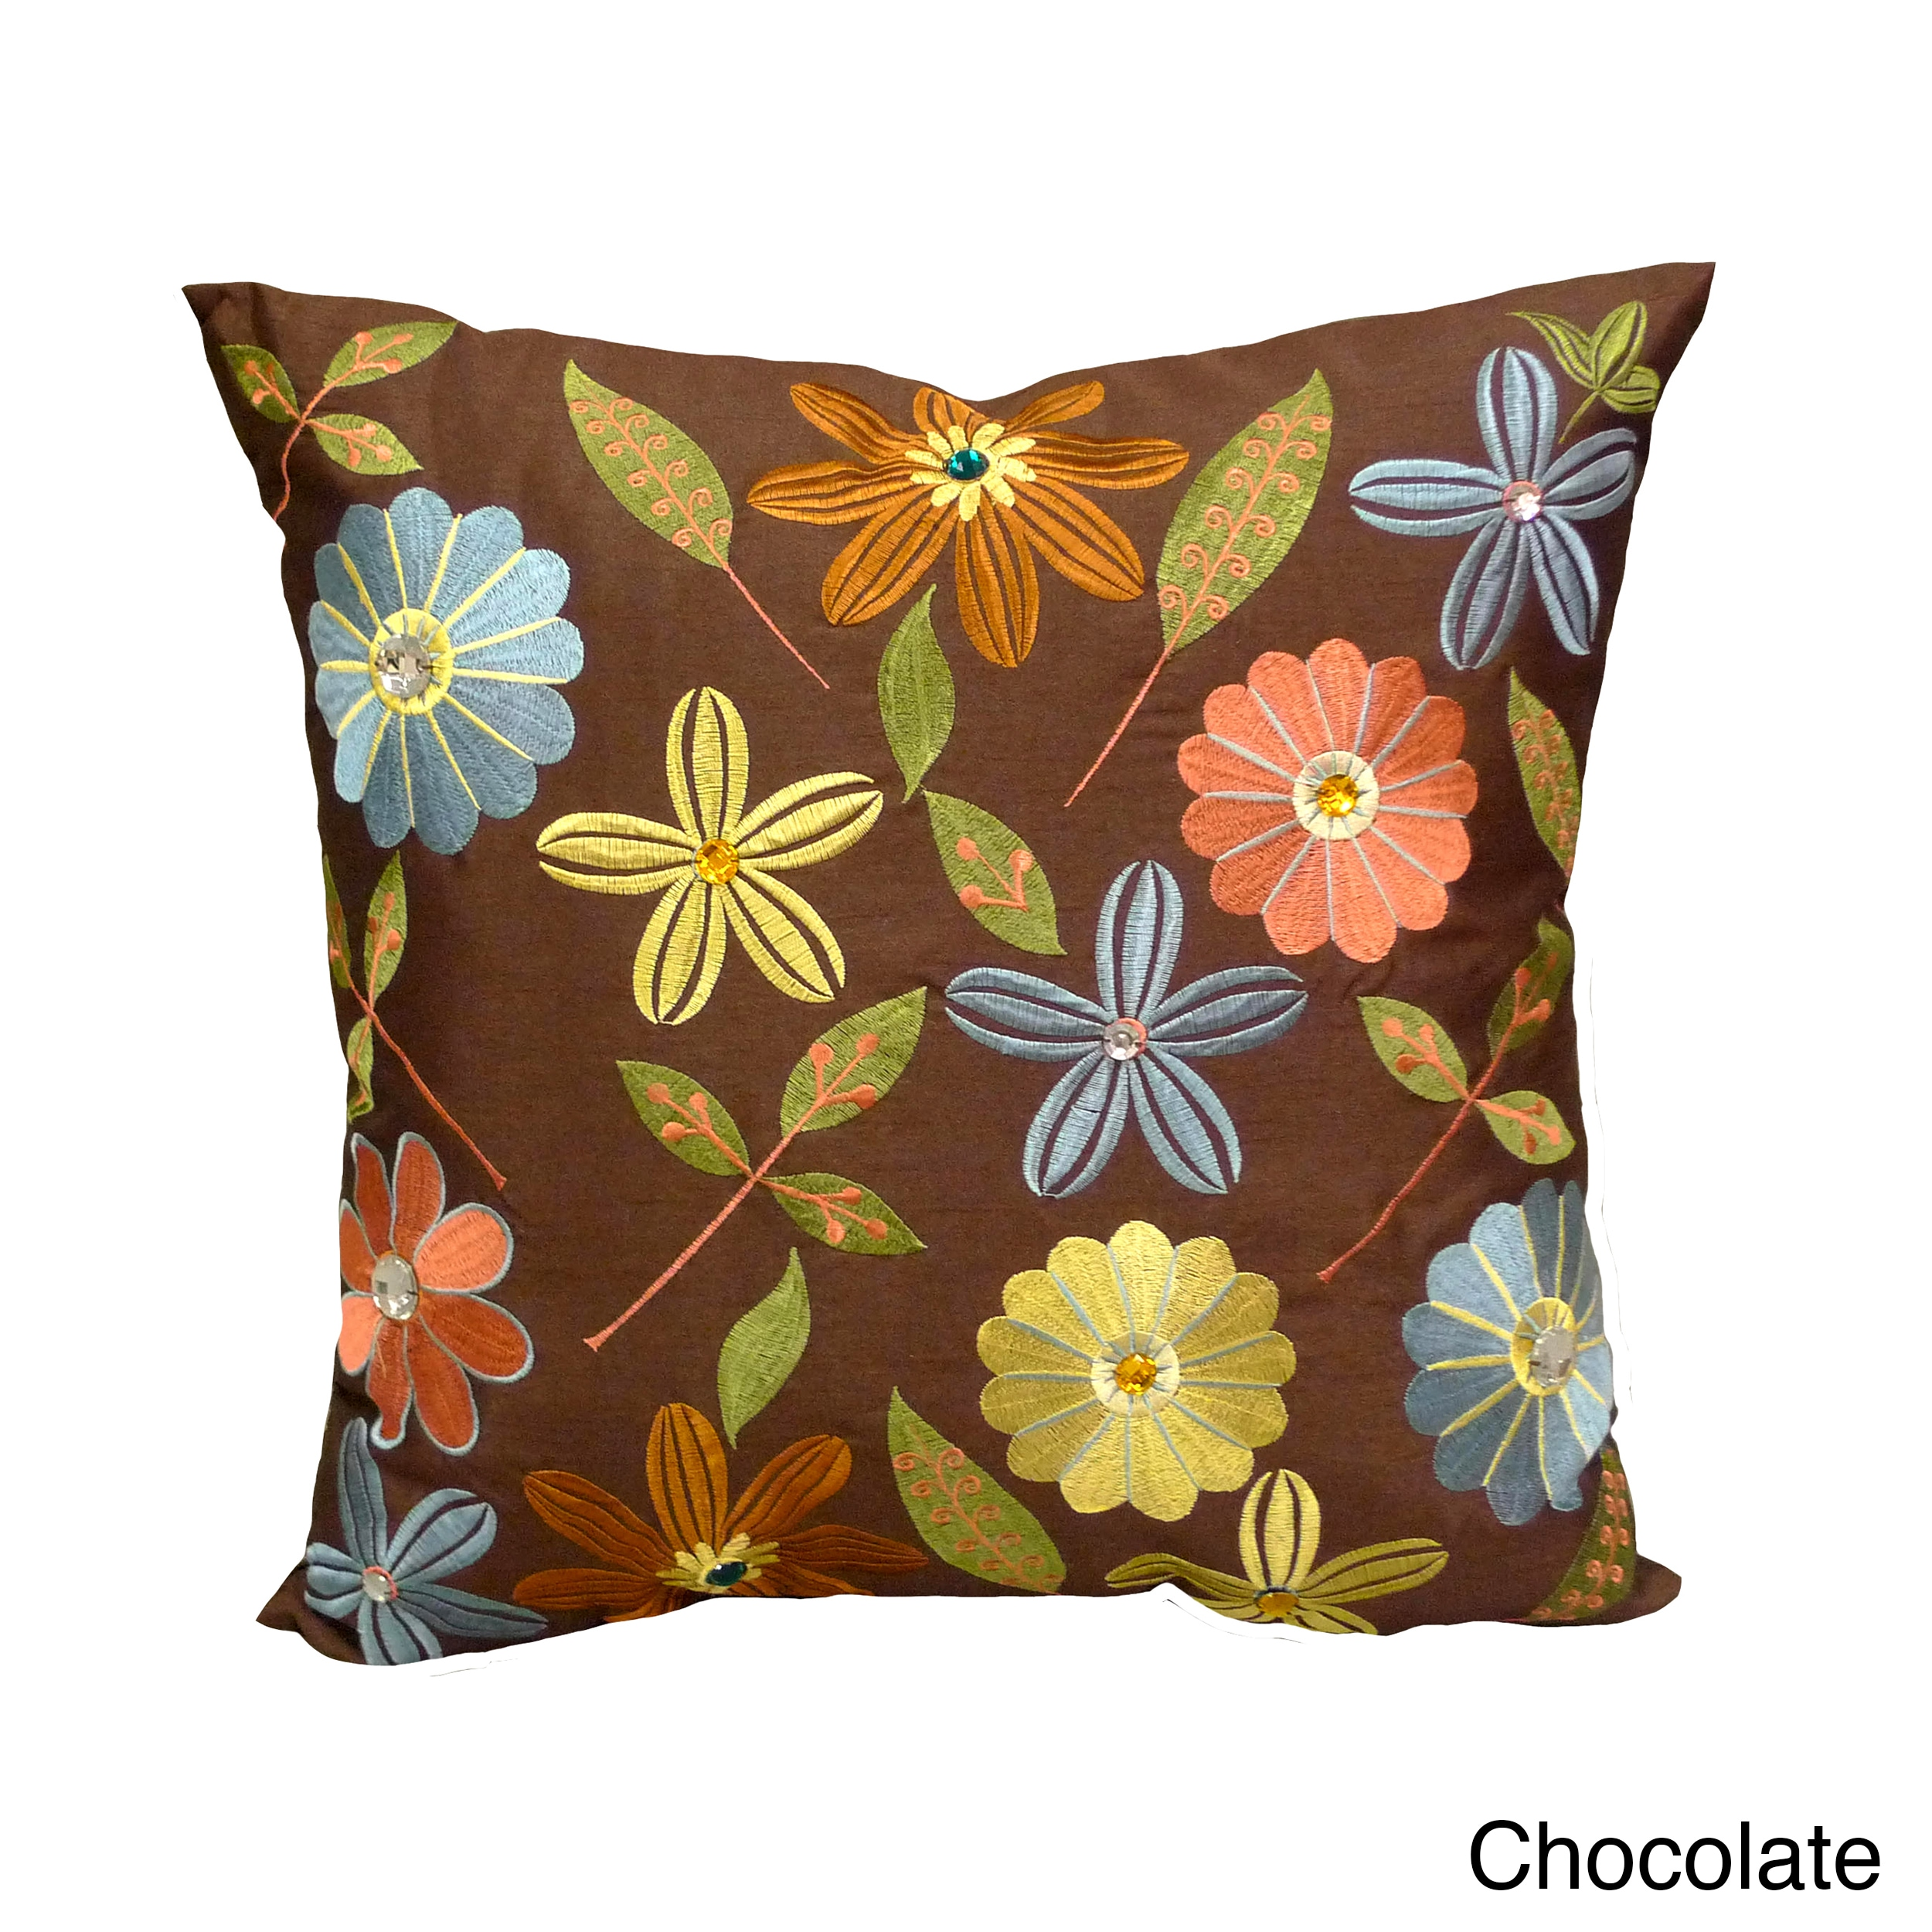 Overstock.com 'Milena' Floral Embroidered Jewel Embellished 18x18-inch Throw Pillows (Set of 2)